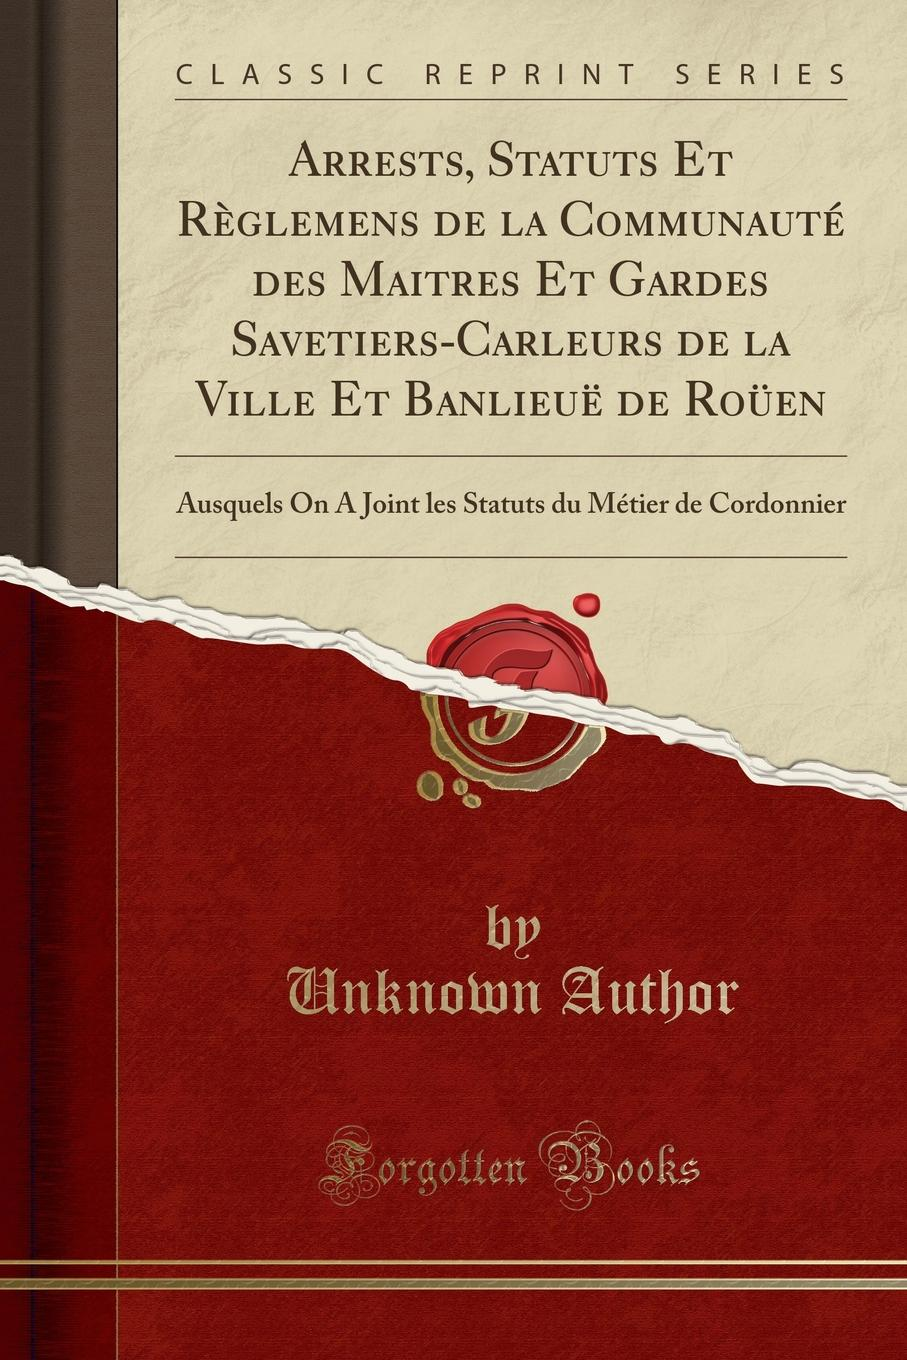 Unknown Author Arrests, Statuts Et Reglemens de la Communaute des Maitres Et Gardes Savetiers-Carleurs de la Ville Et Banlieue de Rouen. Ausquels On A Joint les Statuts du Metier de Cordonnier (Classic Reprint) marius sepet les maitres de la poesie francaise classic reprint